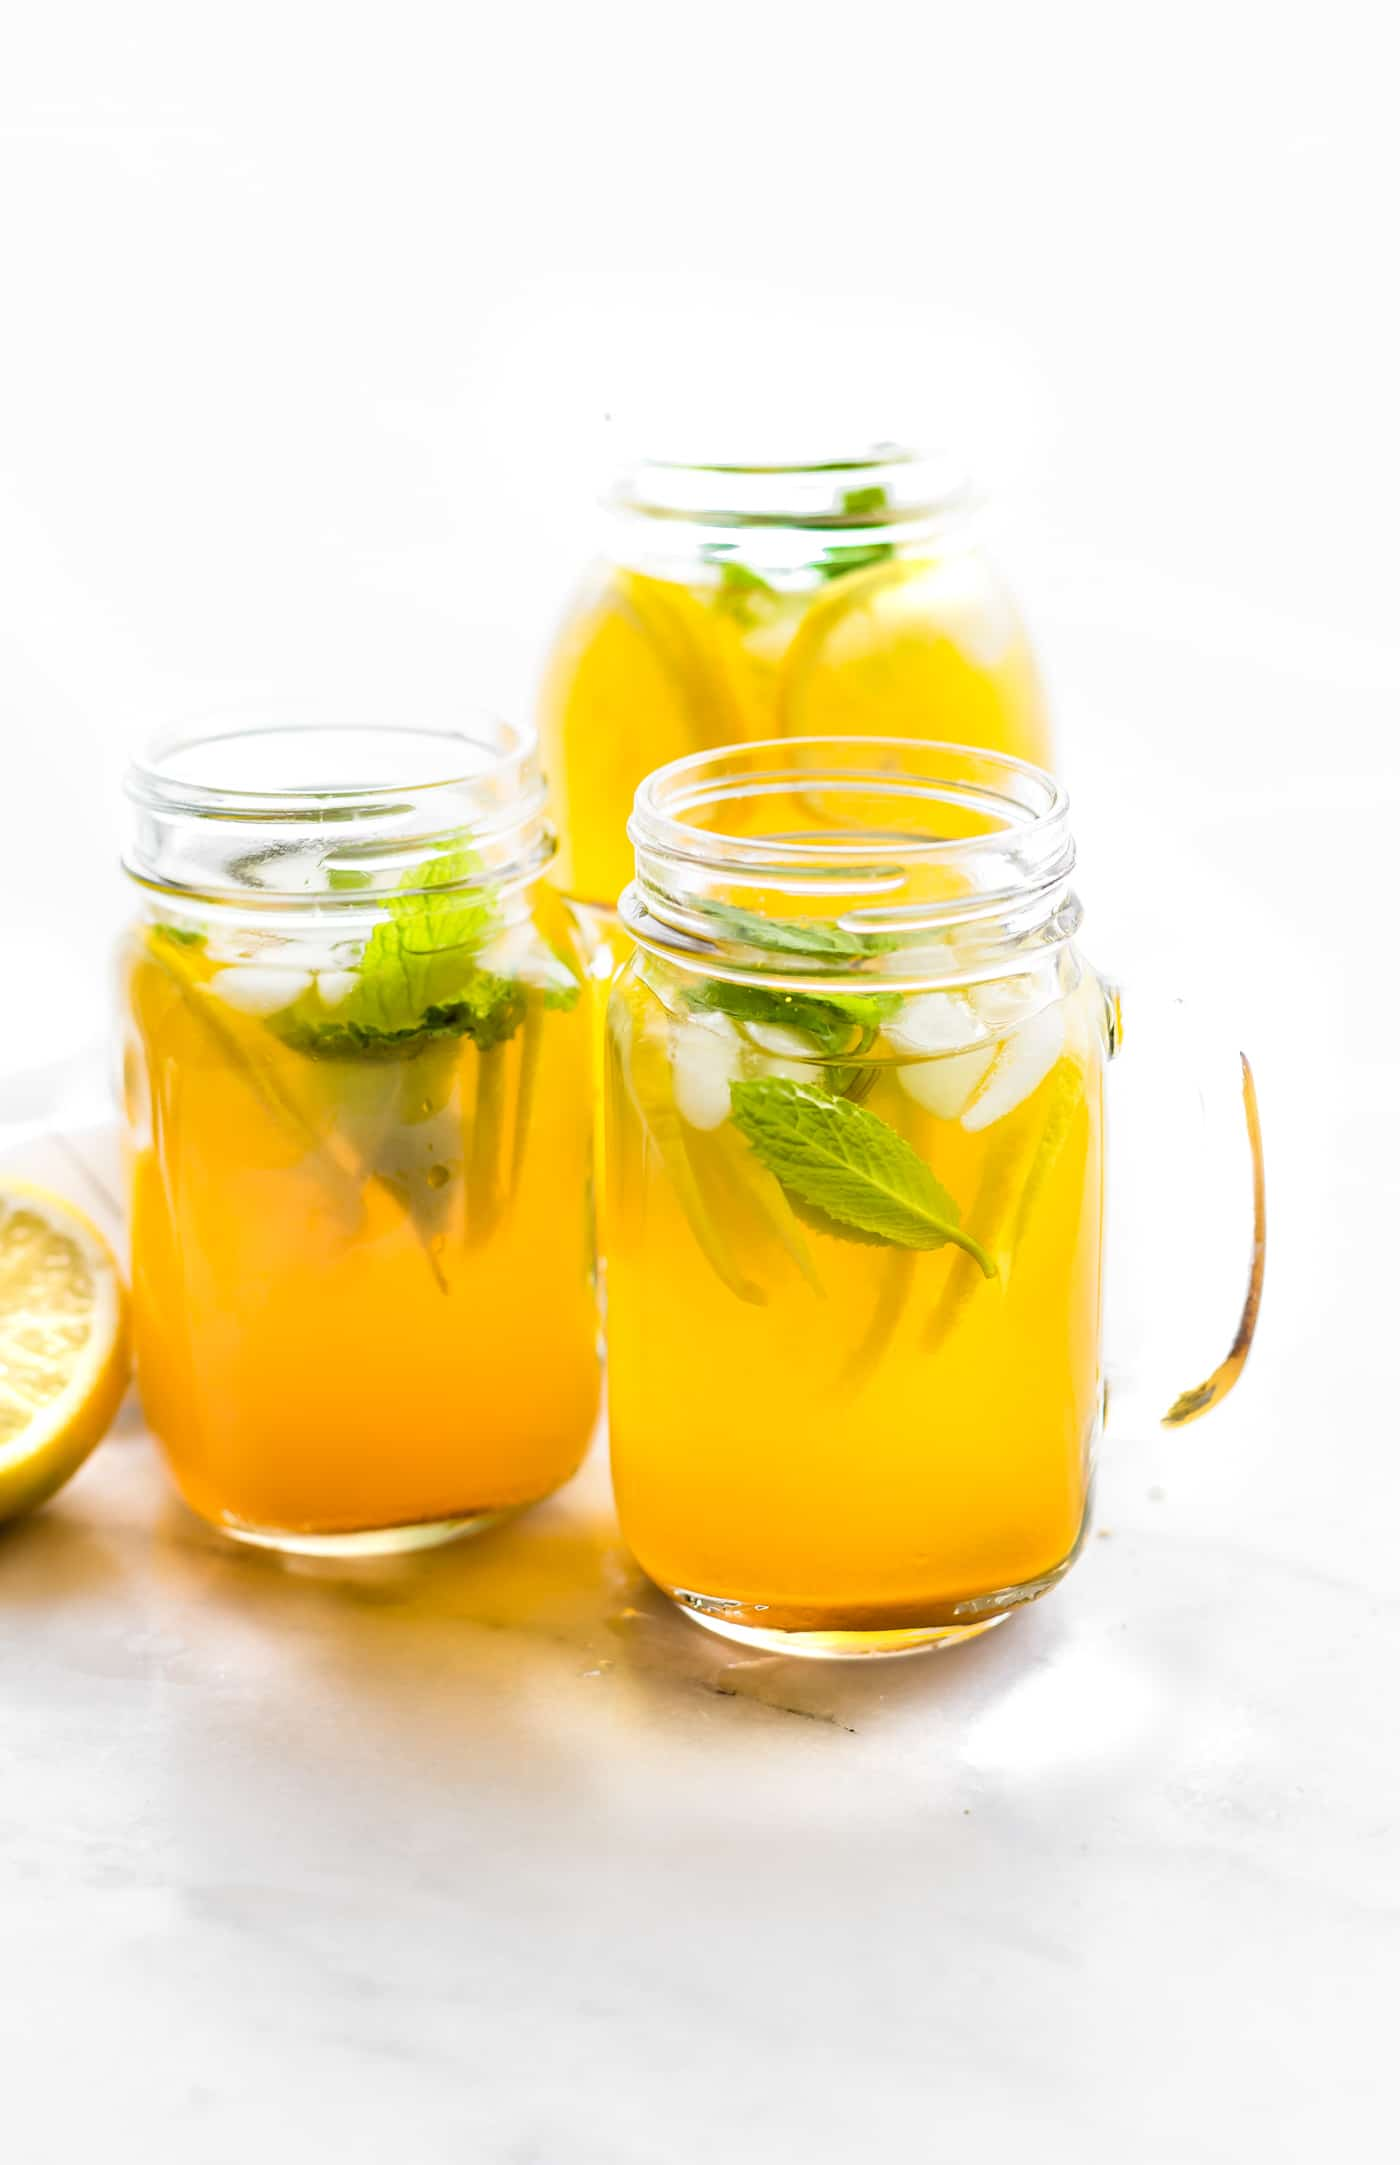 This Turmeric Ginger Lemonade with fresh Mint is great for fighting fatigue and reducing inflammation in the body. It's quick to make, naturally sweetened, and super refreshing! A homemade lemonade with a hint of spice, tartness, and Zing! Vegan, paleo, and AMAZING!This Turmeric Ginger Lemonade with fresh Mint is great for fighting fatigue and reducing inflammation in the body. It's quick to make, naturally sweetened, and super refreshing! A homemade lemonade with a hint of spice, tartness, and Zing! Vegan, paleo, and AMAZING!